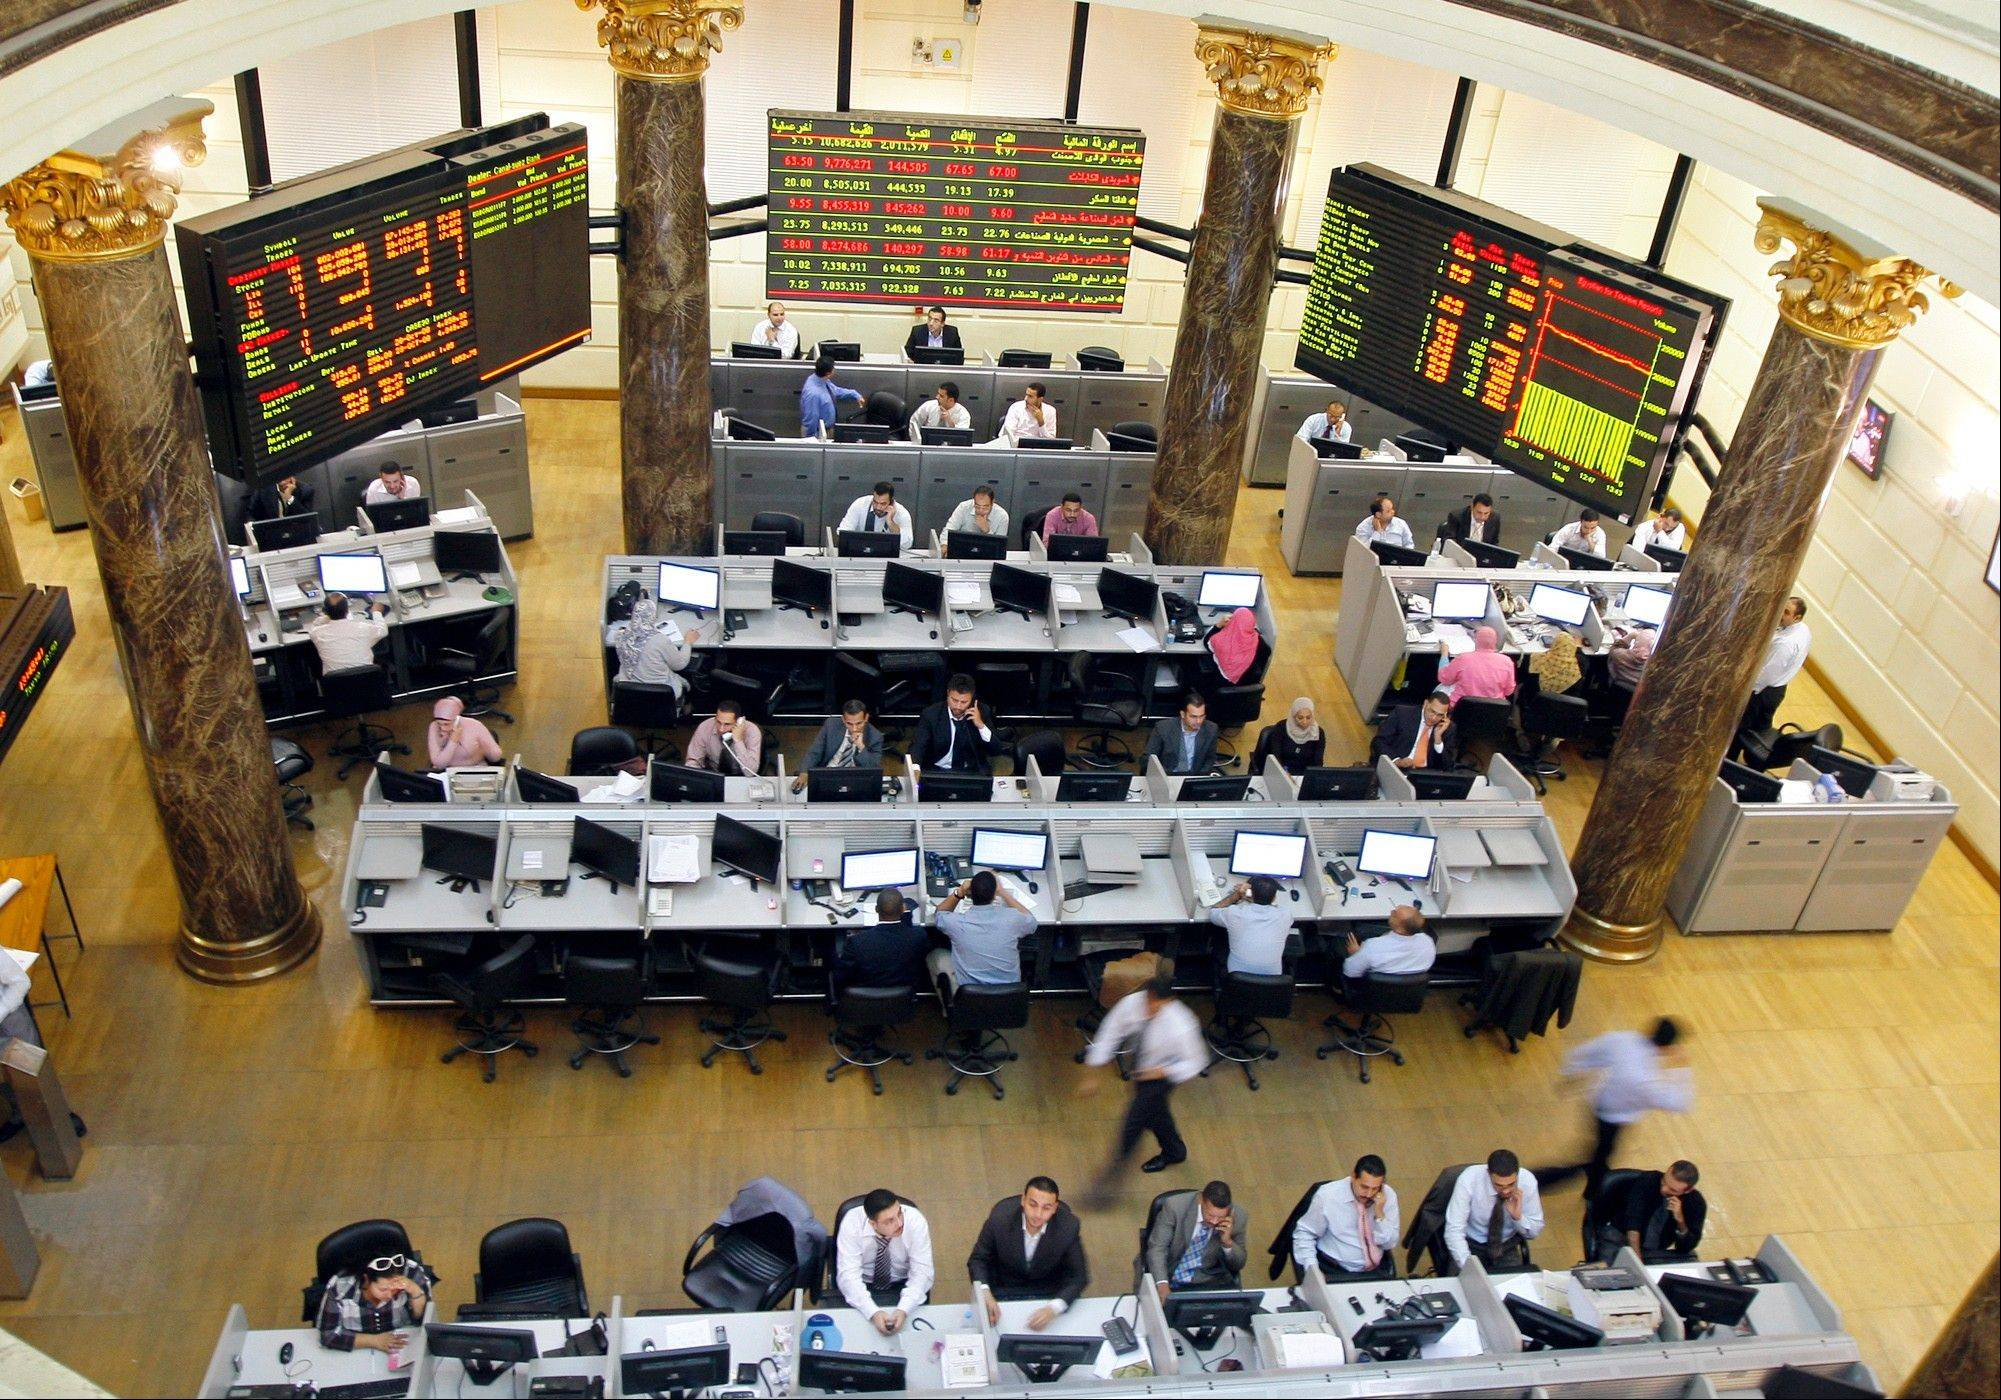 With the opening bell of the country�s stock market on Sunday, the first day of the workweek in Egypt, the turmoil spread from the country�s bitter politics to its already ailing economy.